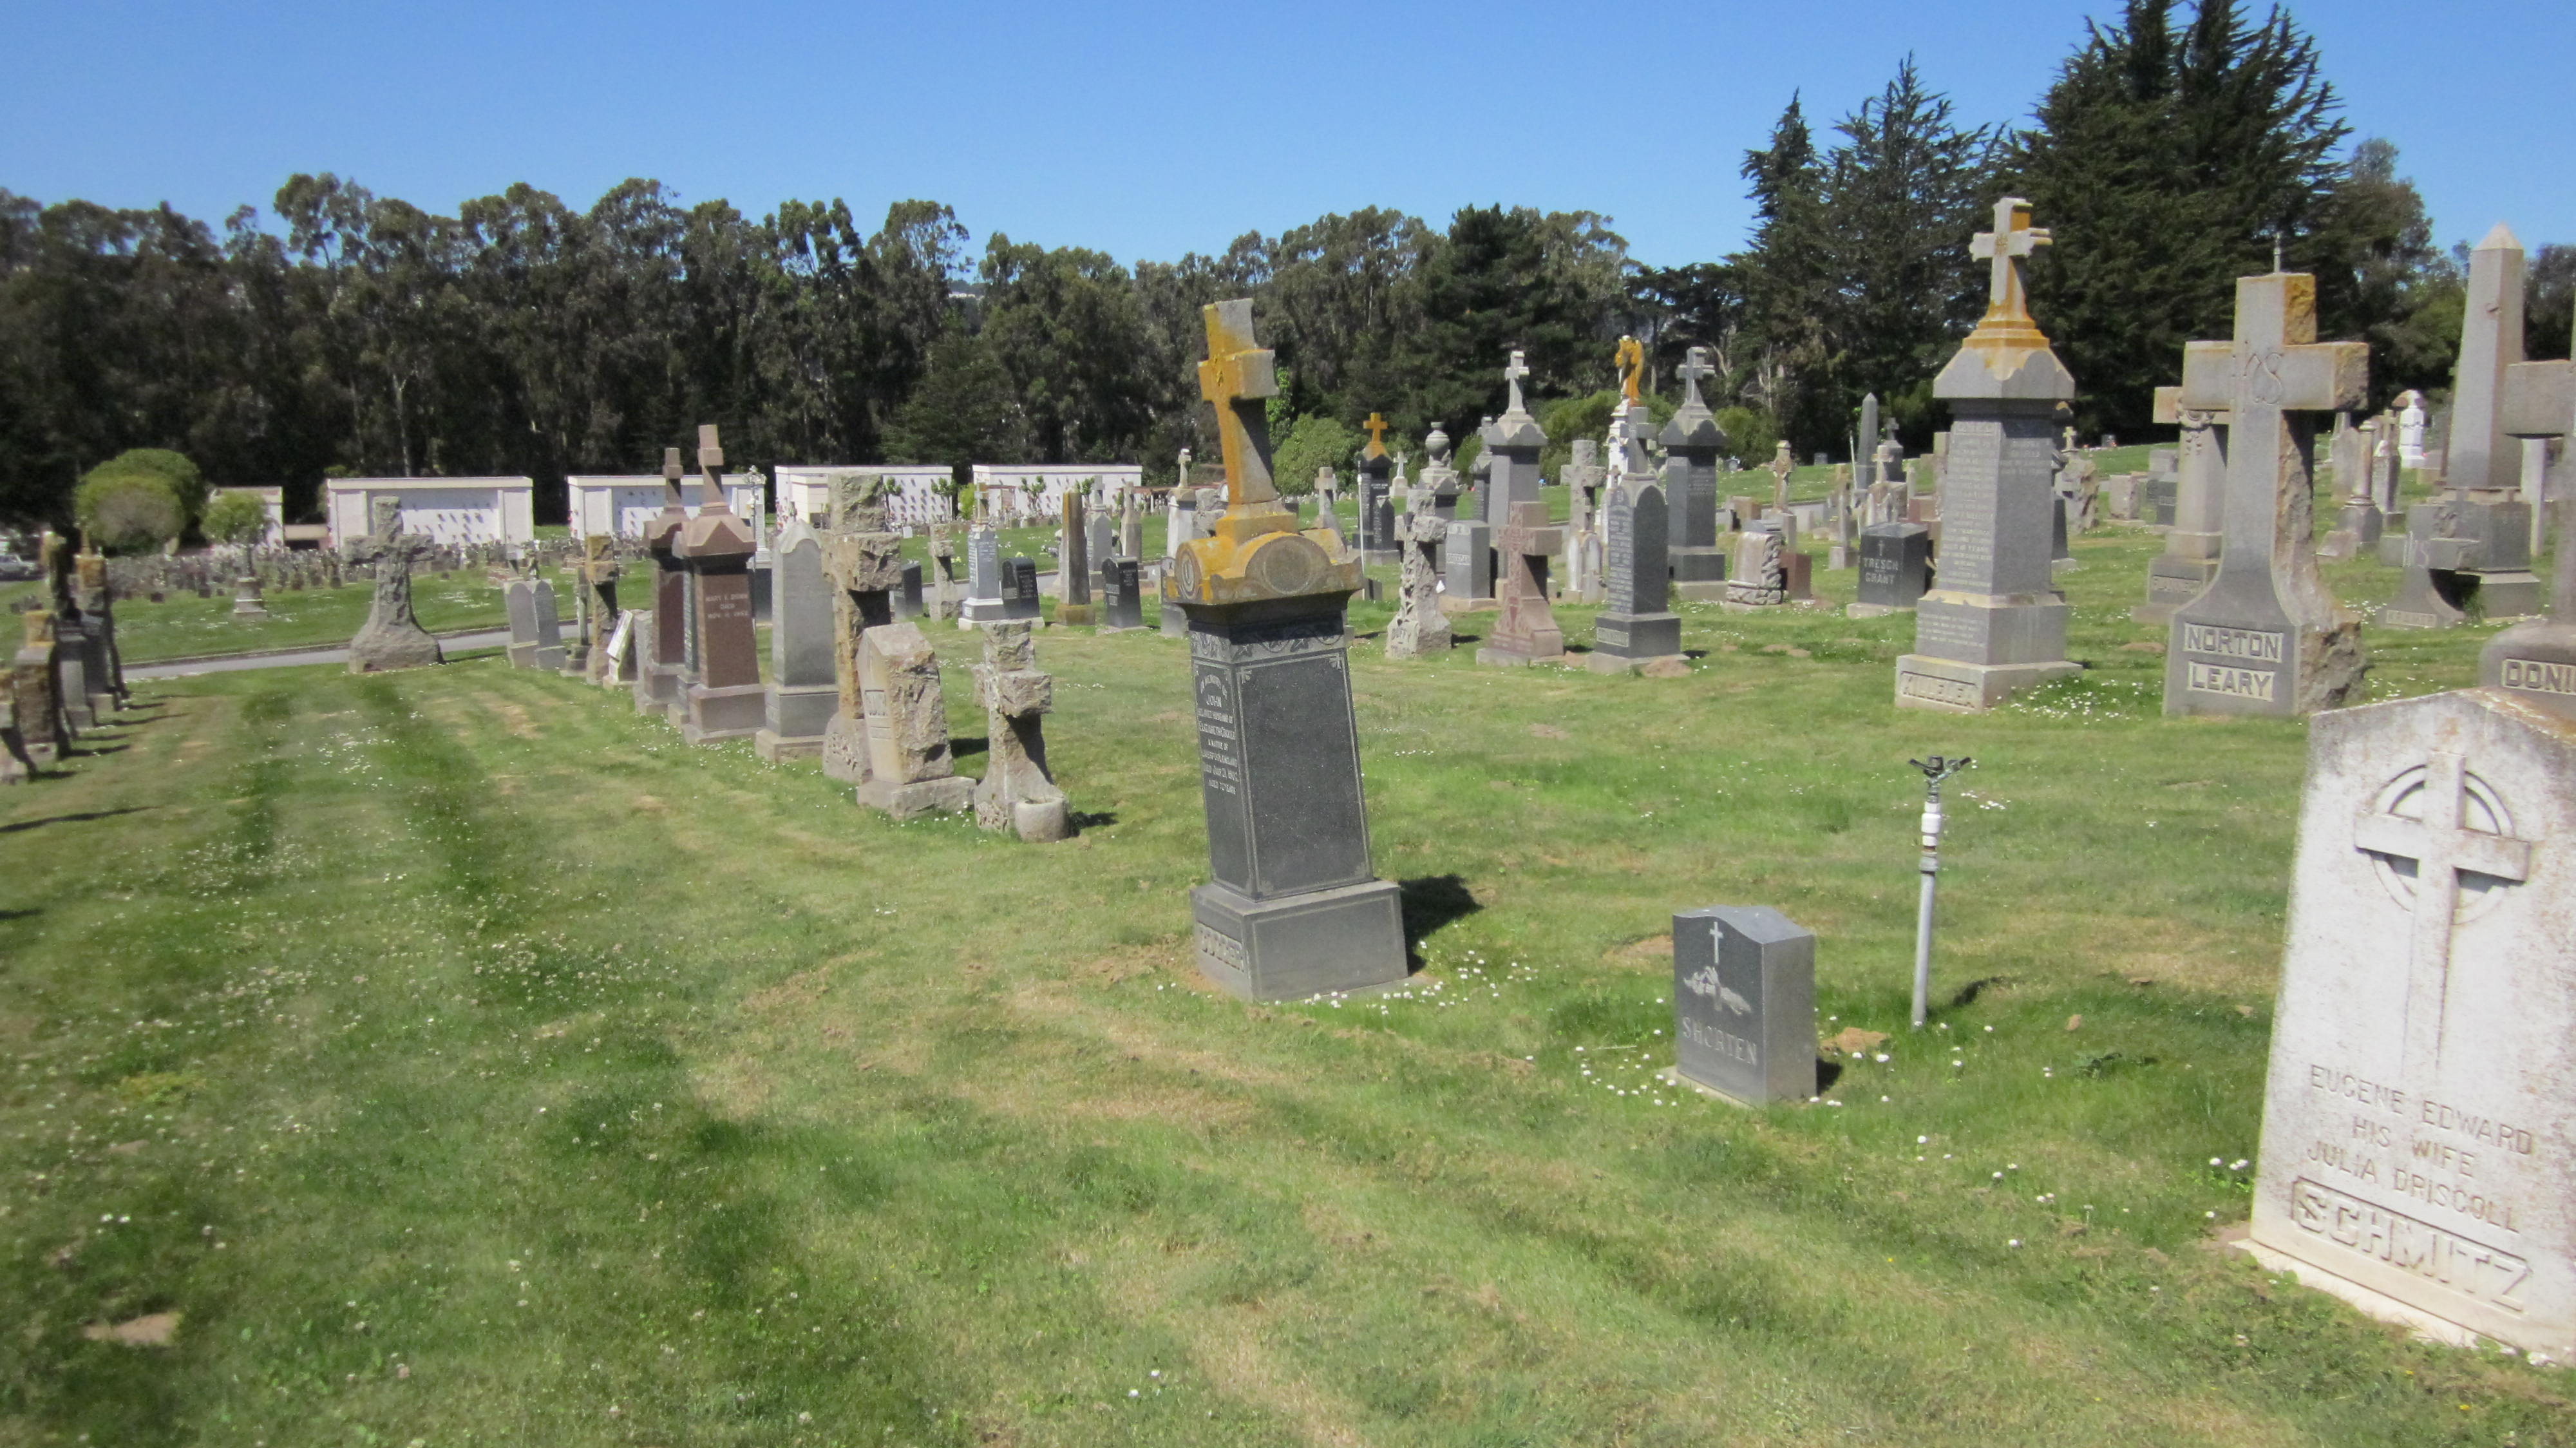 Leaning tombstones in Holy Cross Cemetery in Colma.